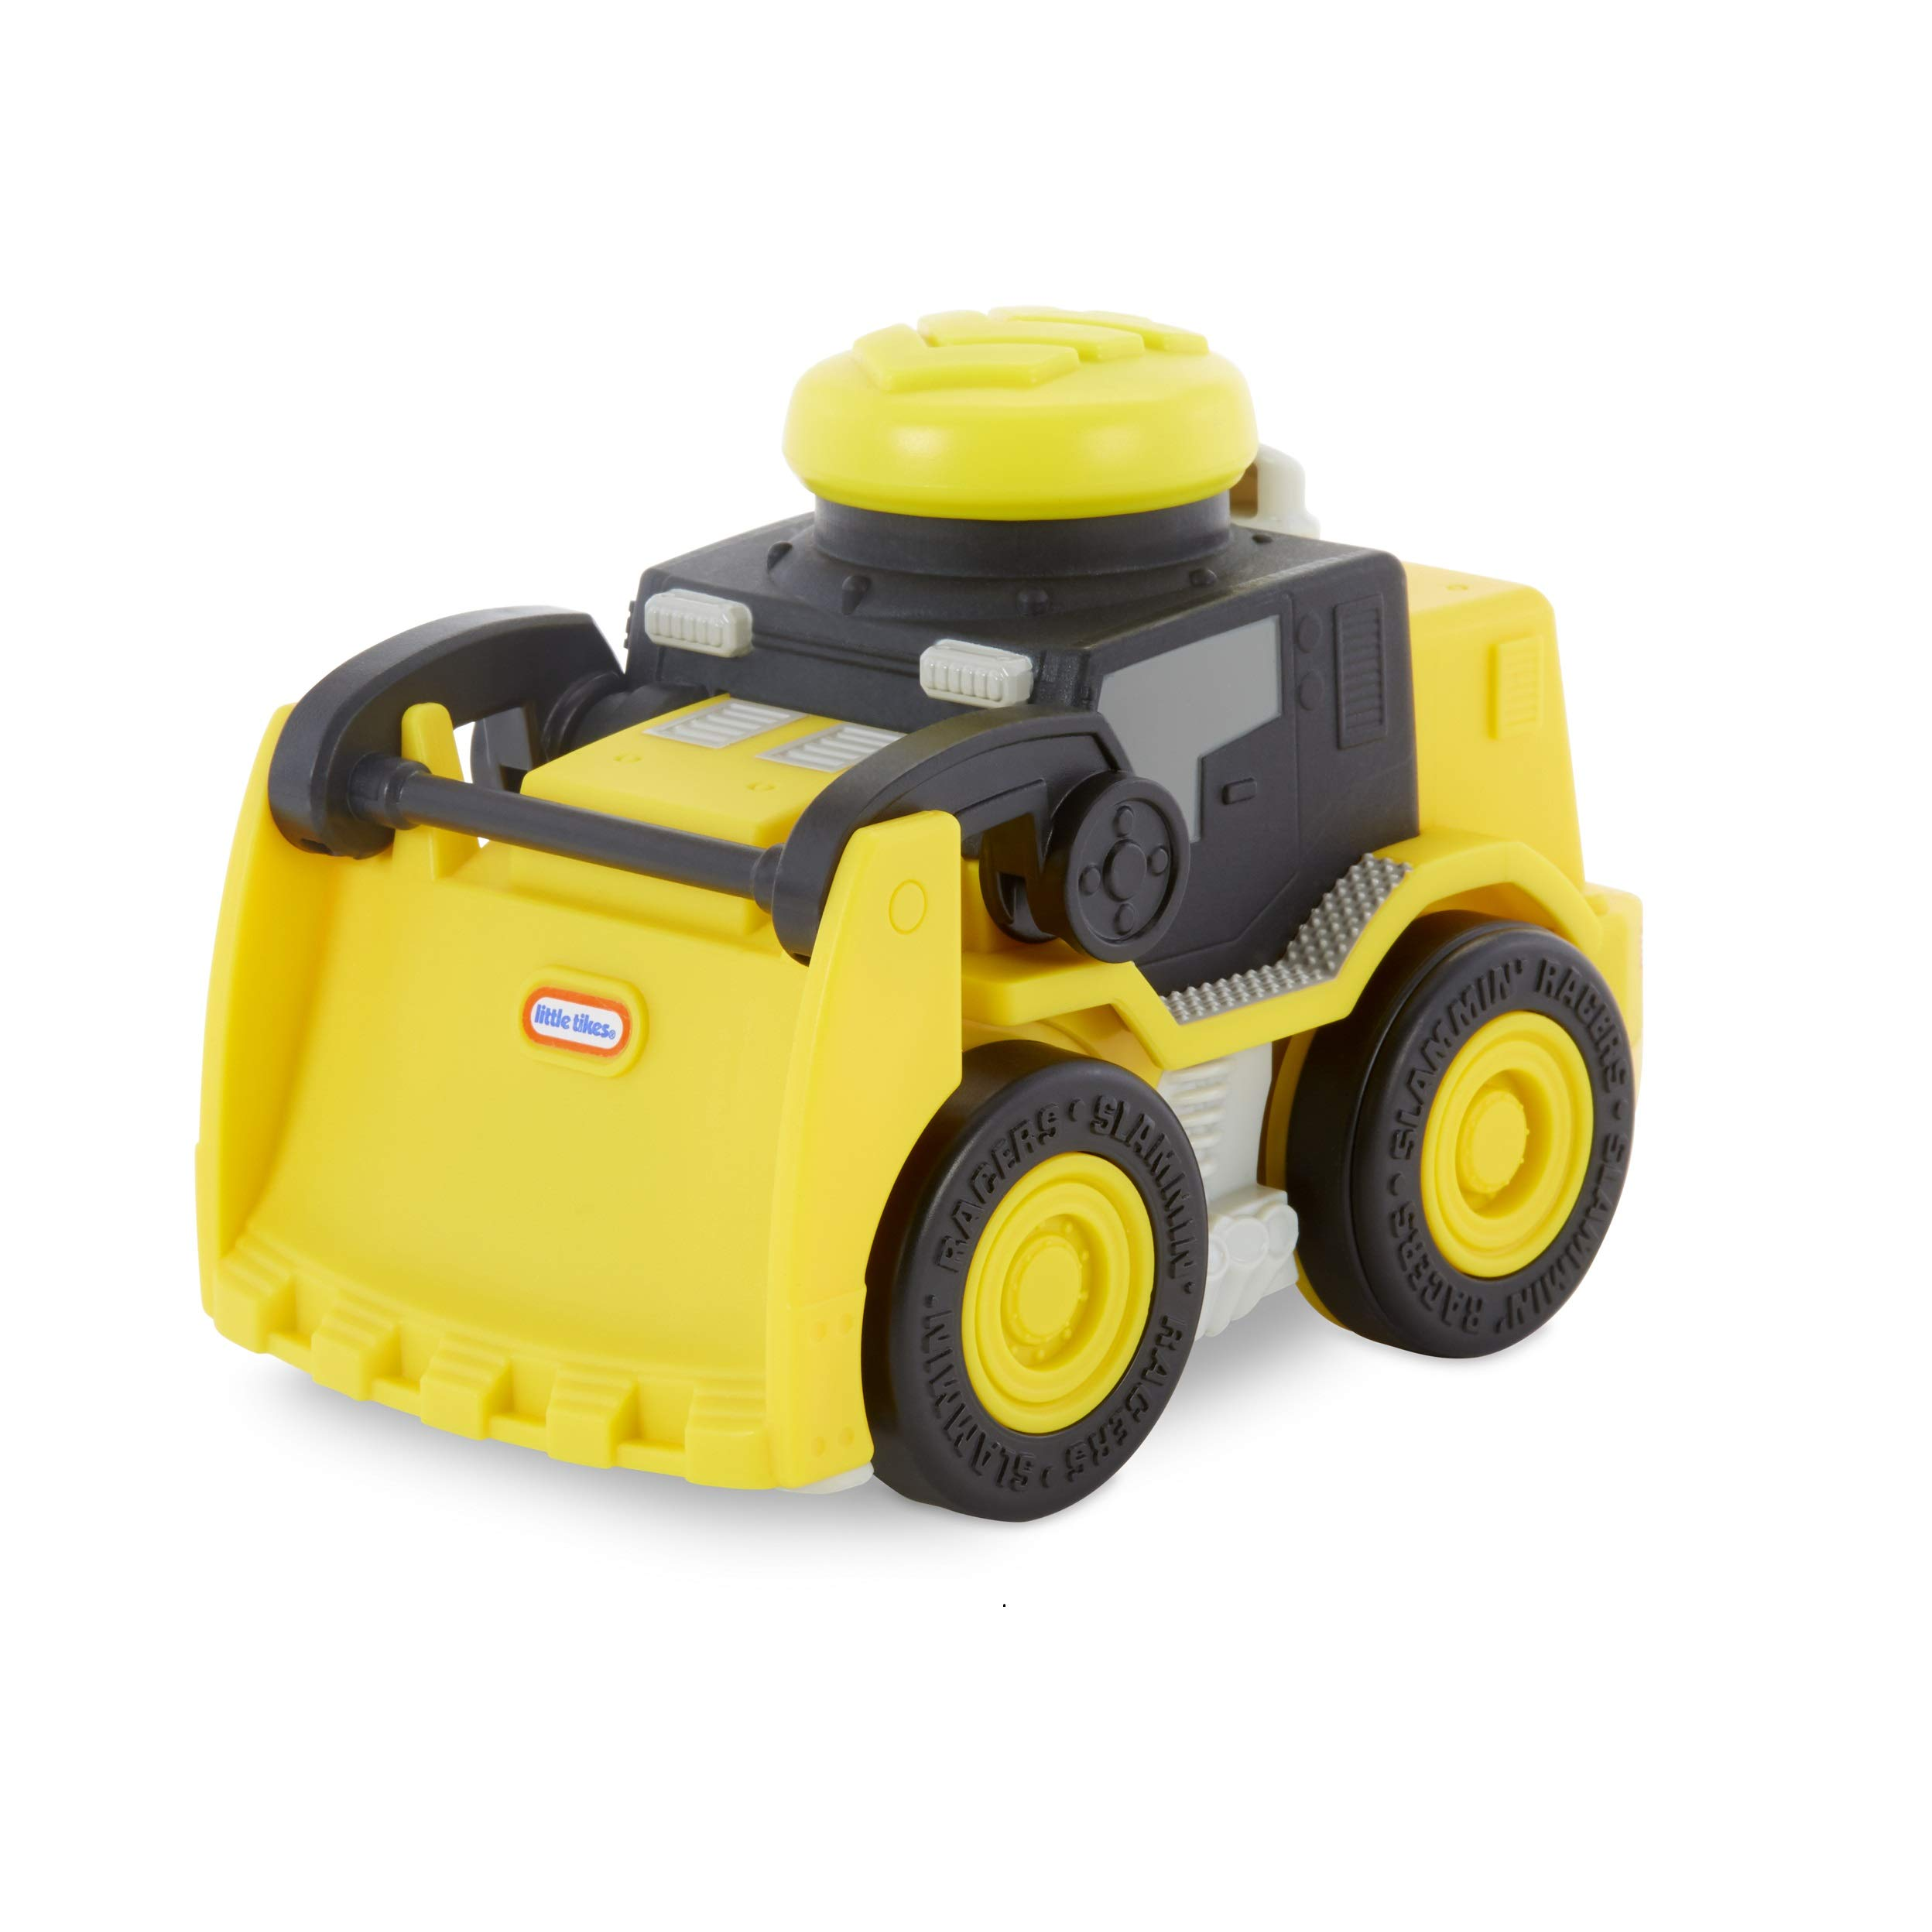 Little Tikes Slammin' Racers Front Loader Truck Vehicle with Sounds by Little Tikes